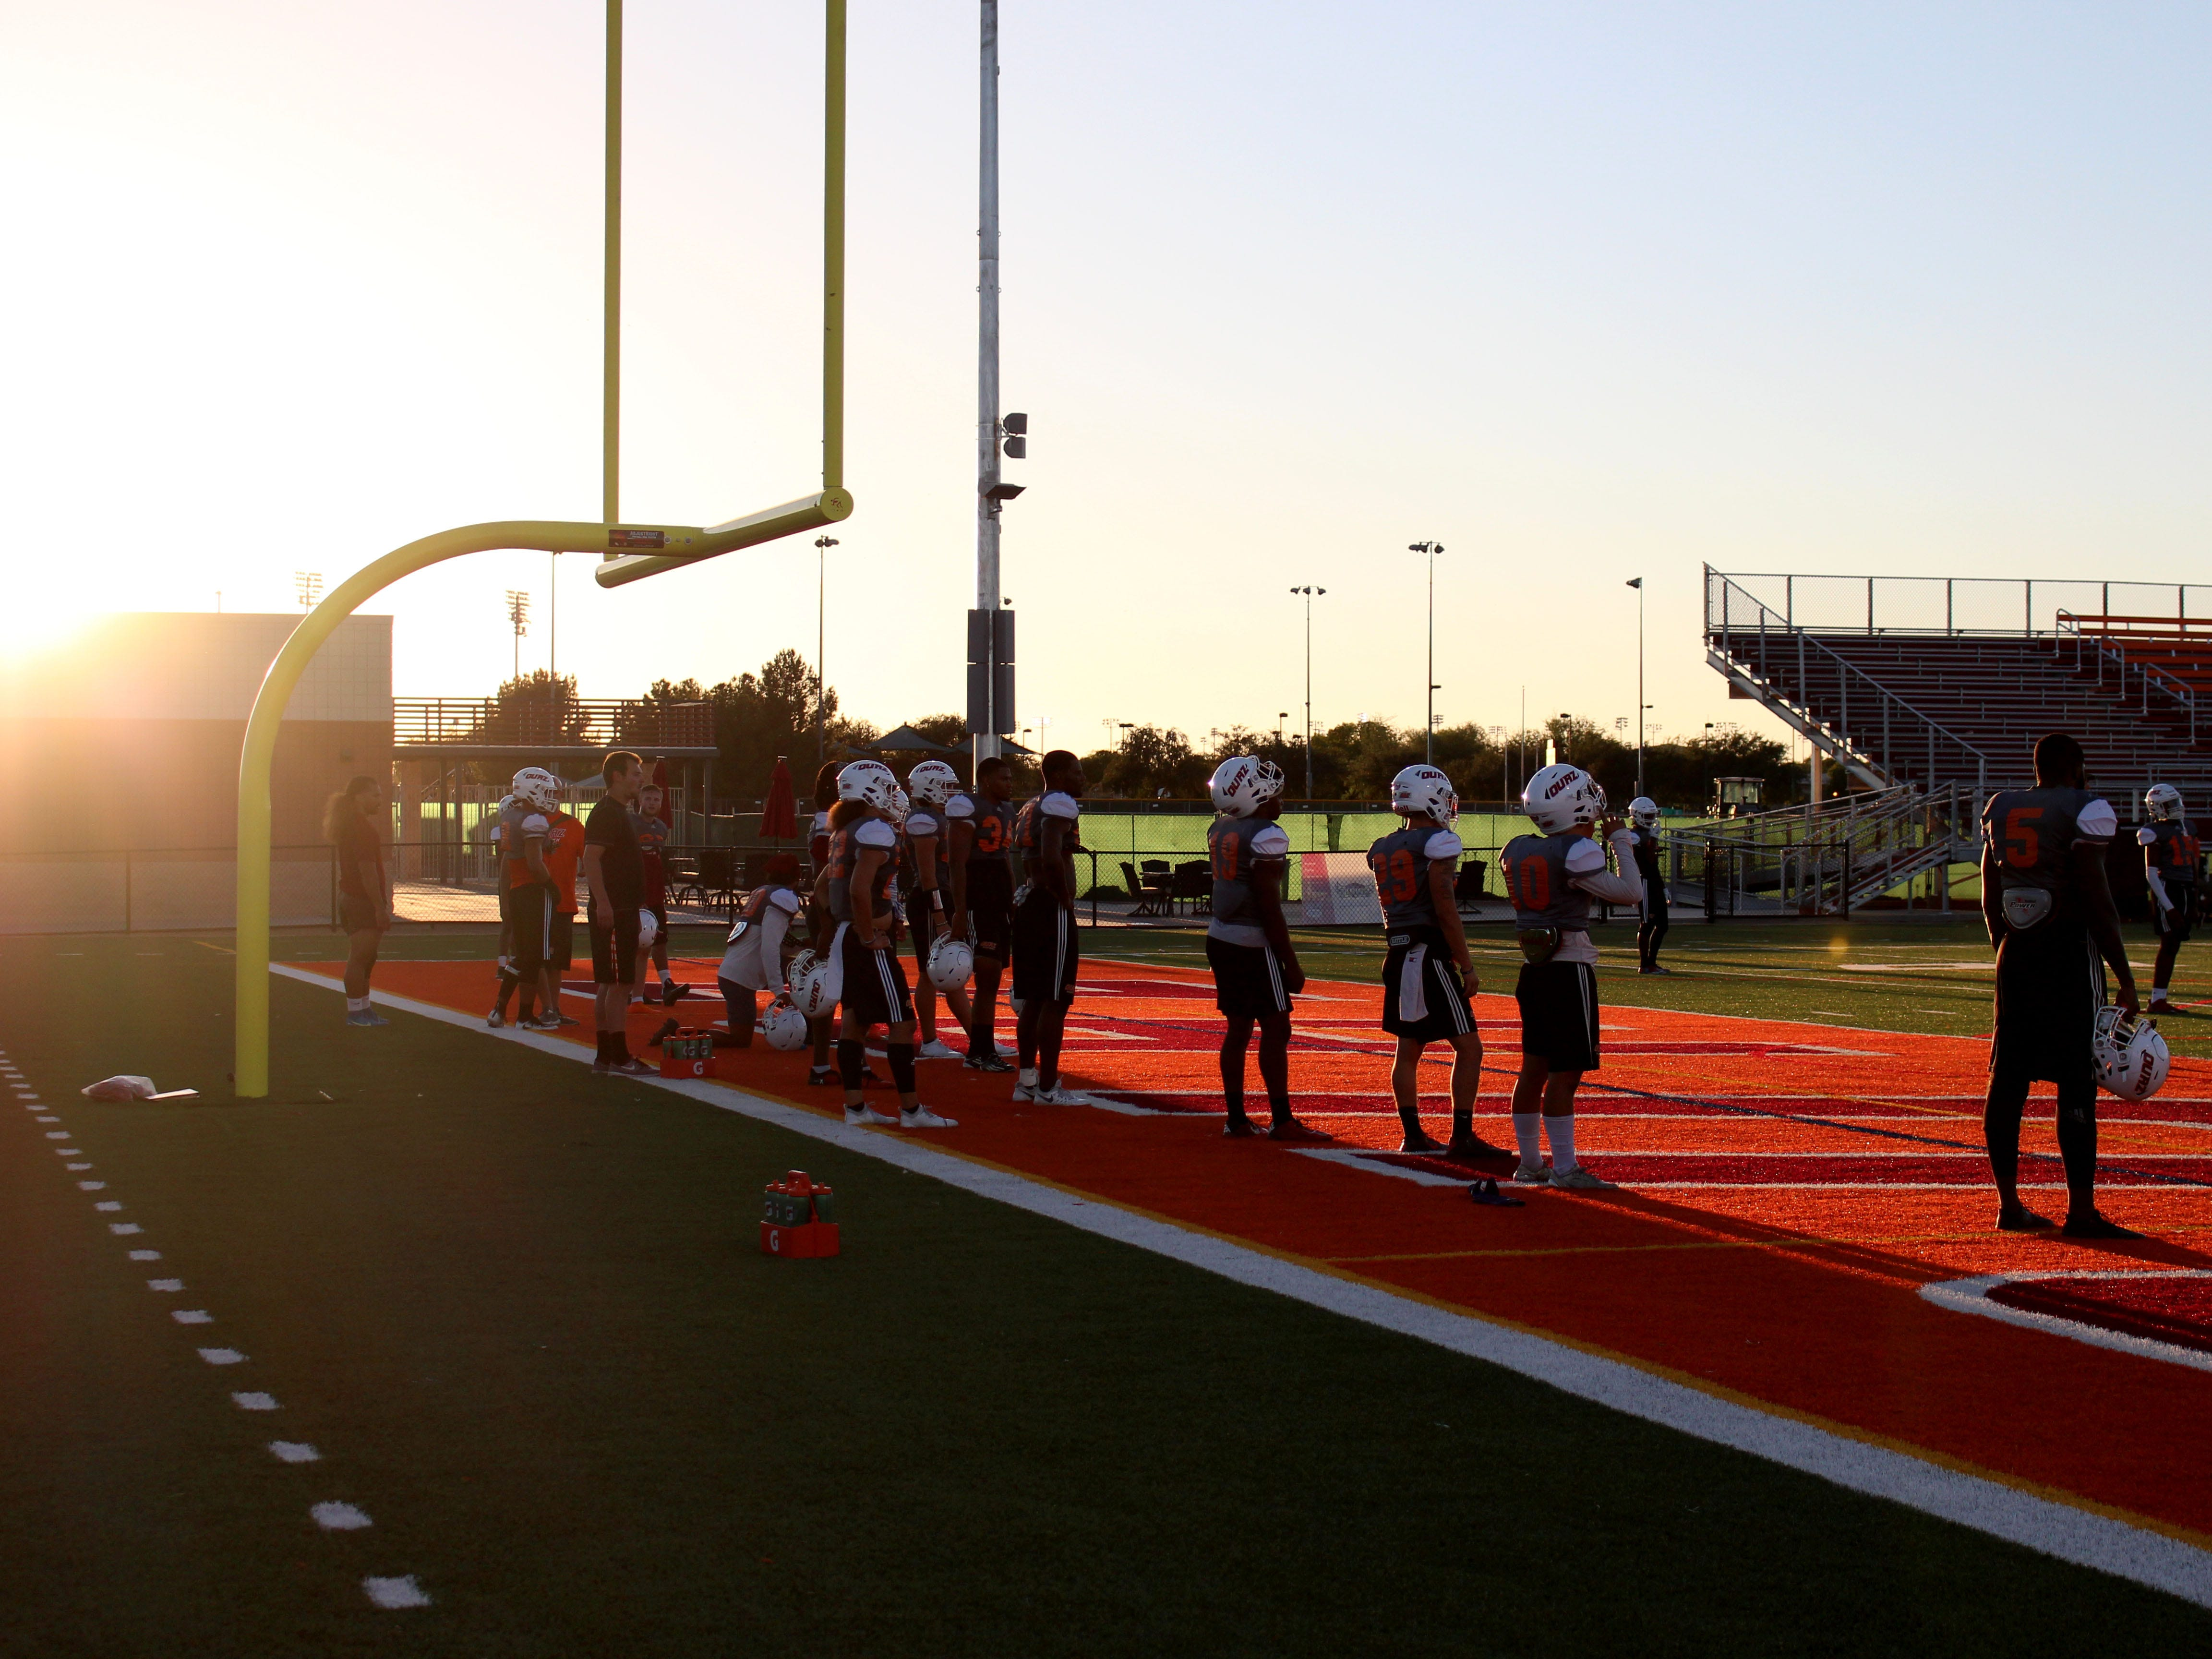 OUAZ team watches practice on Tuesday night in Surprise on Sept. 11, 2018.